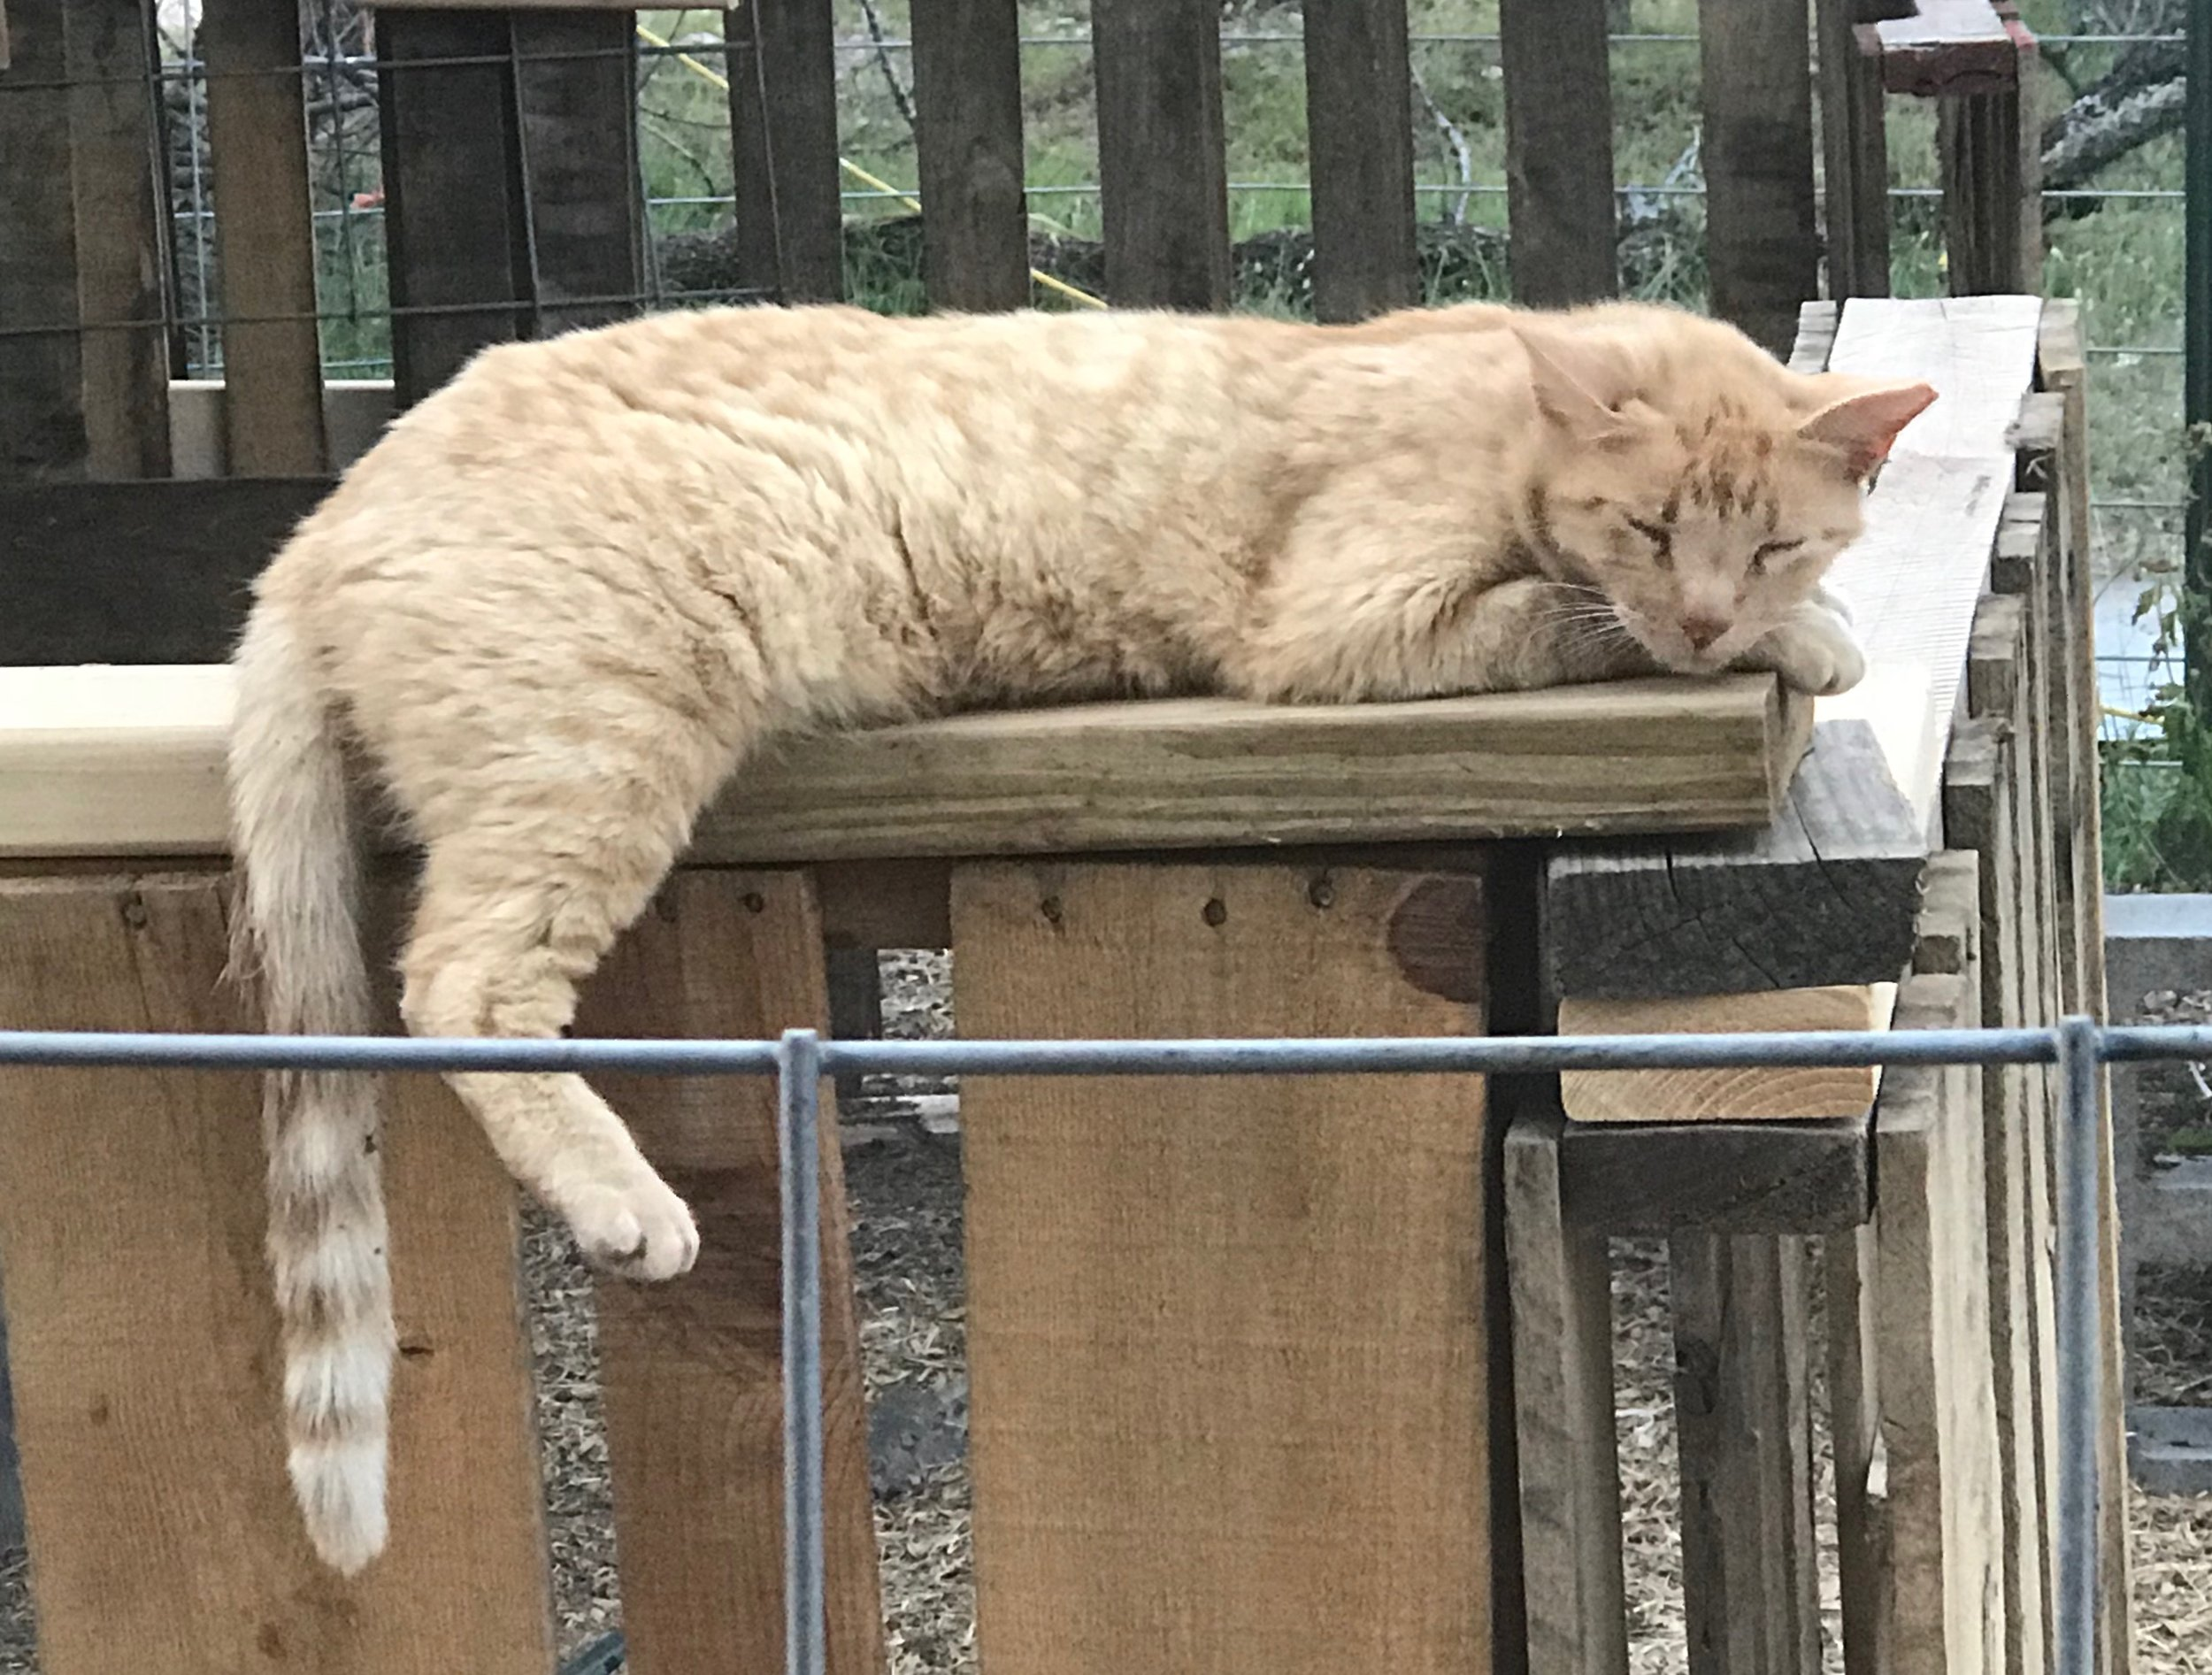 Napping on the Job? - Well Texas does get hot so when it's over 100 degrees in May - the cats just take naps!